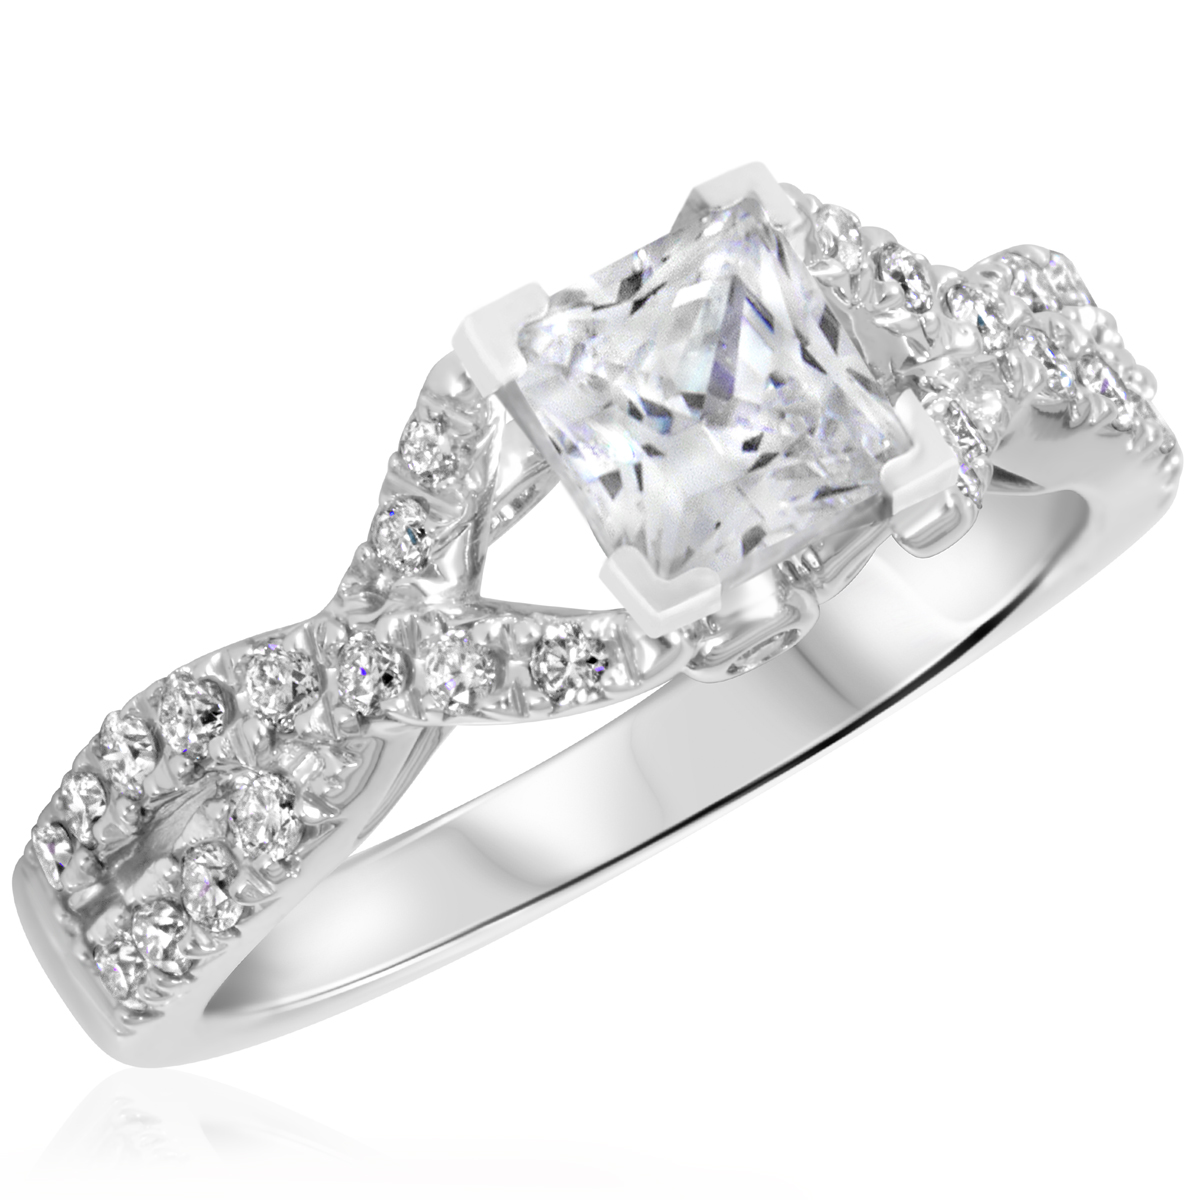 1 1/2 CT. T.W. Diamond Ladies Engagement Ring 14K White Gold